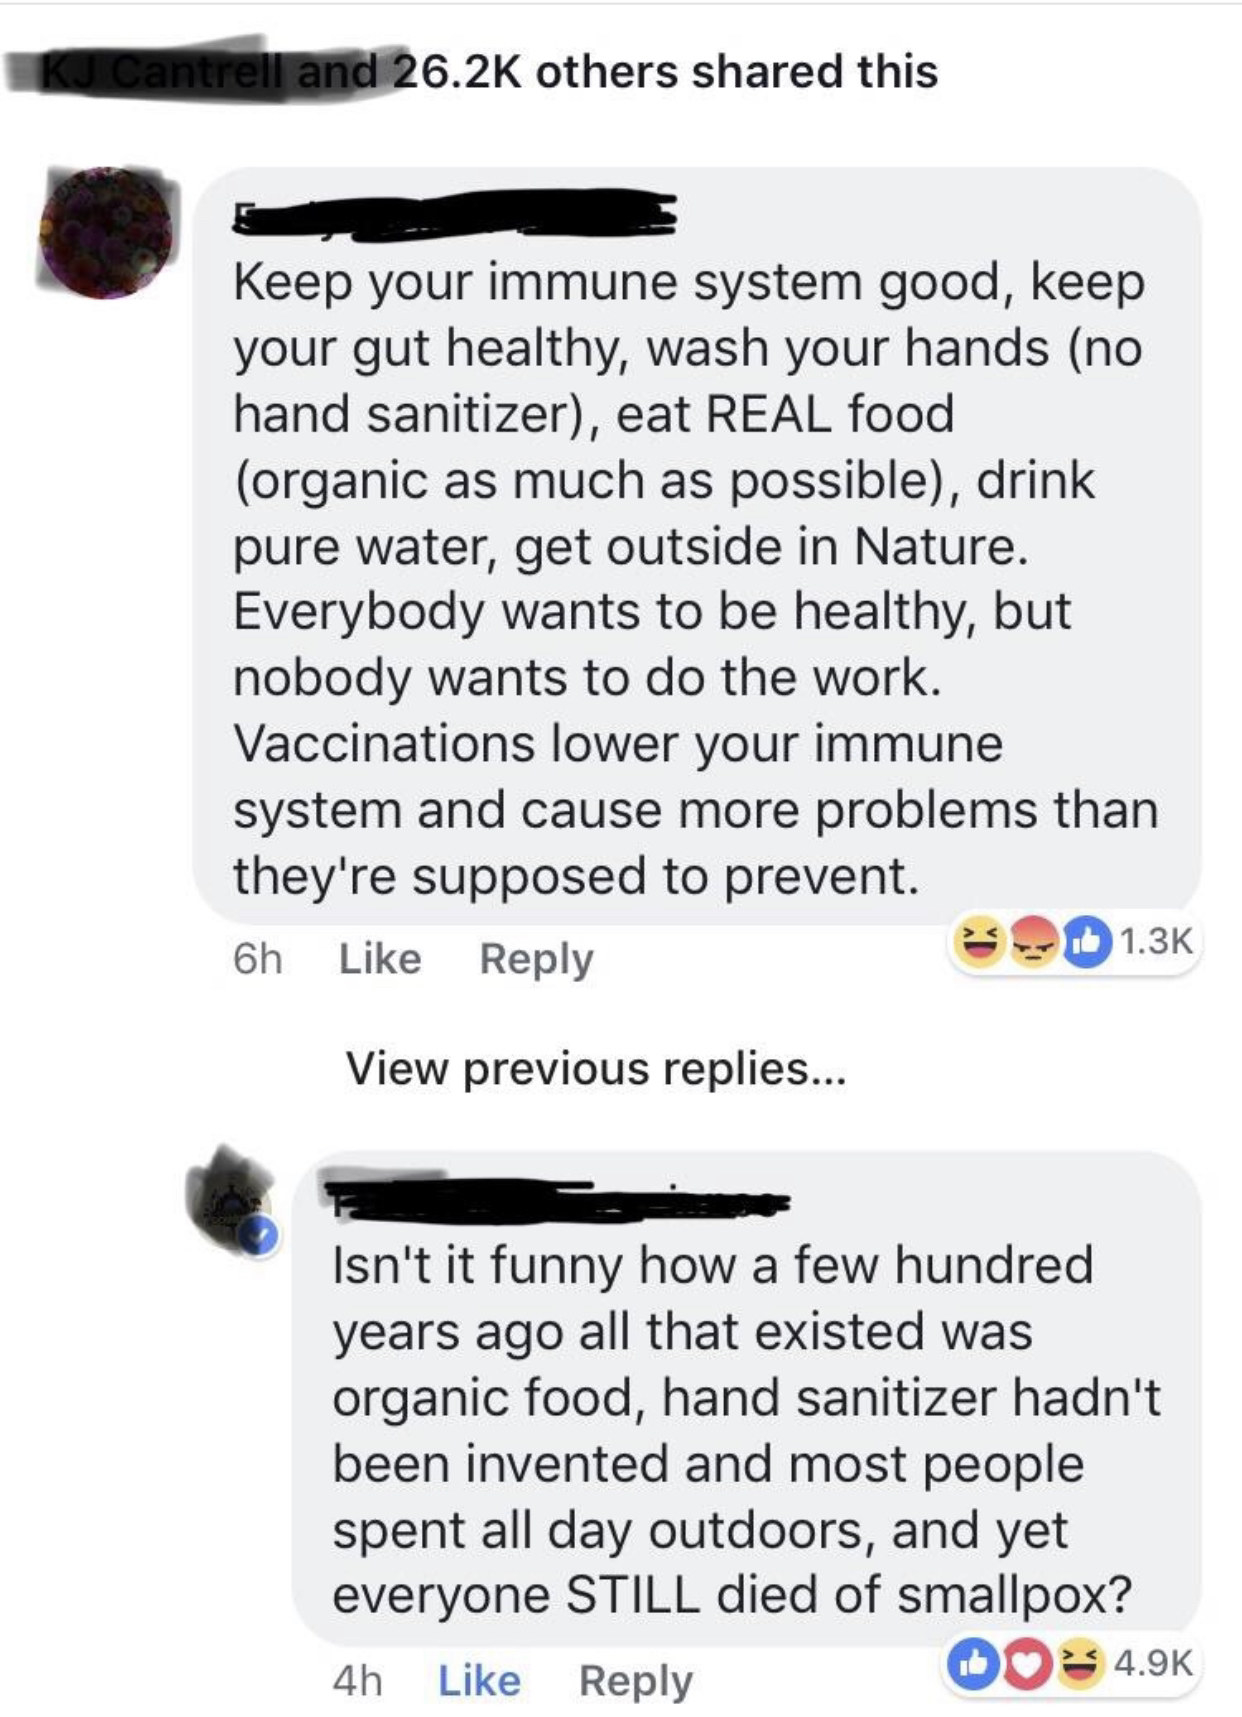 """""""Keep your immune system good, wash hands (no hand sanitizer), eat organic food, go outside..."""" A few hundred years ago all food was organic, hand sanitizer hadn't been invented and most people spent all day outdoors, yet everyone STILL died of smallpox"""